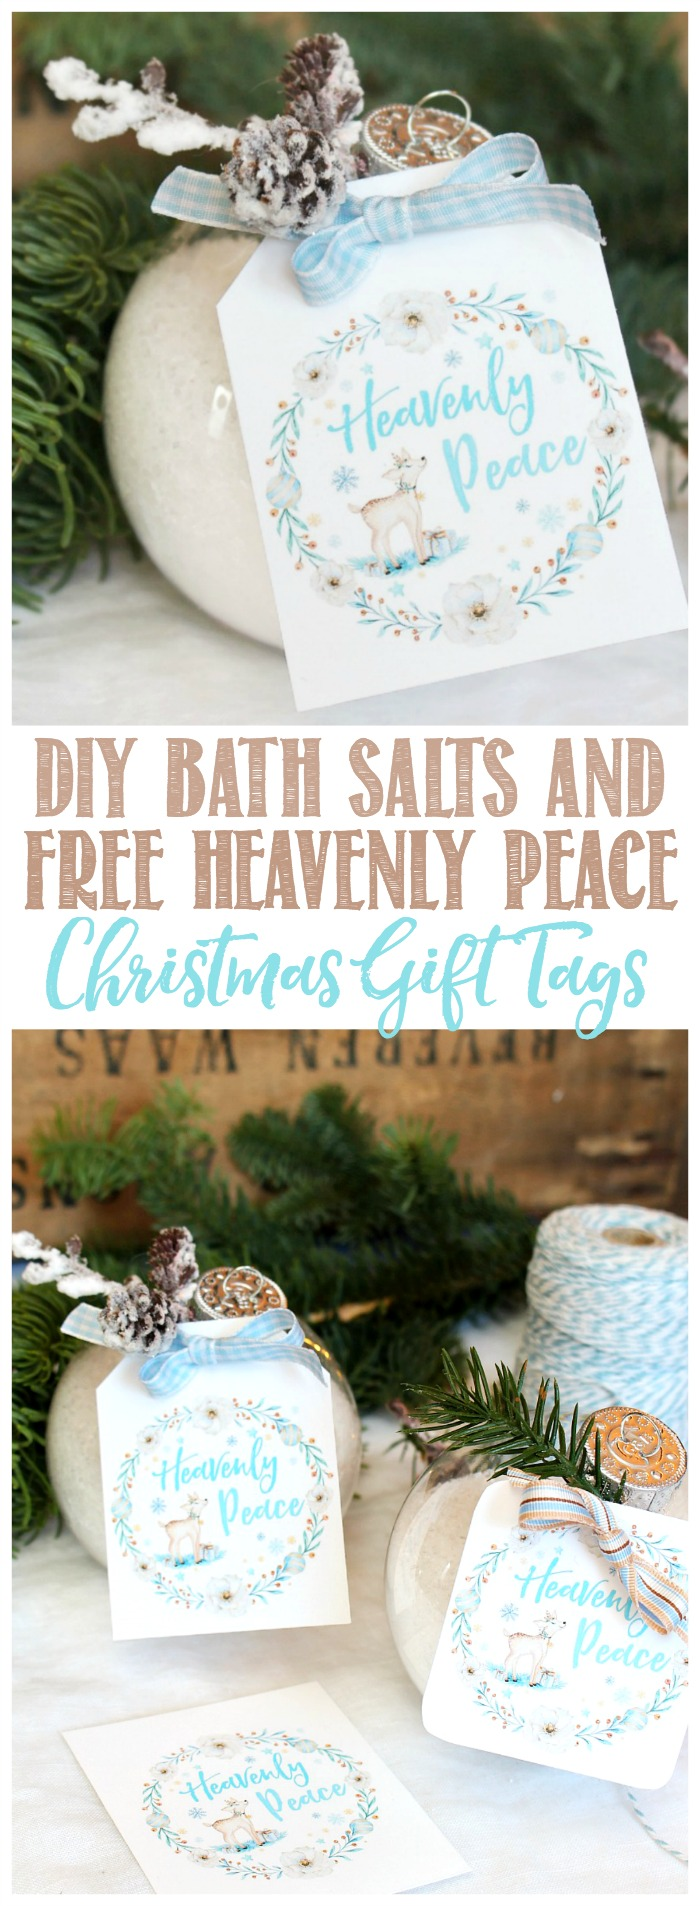 DIY Bath Salts Christmas Gift Idea and Free Heavenly Peace Christmas Gift Tags